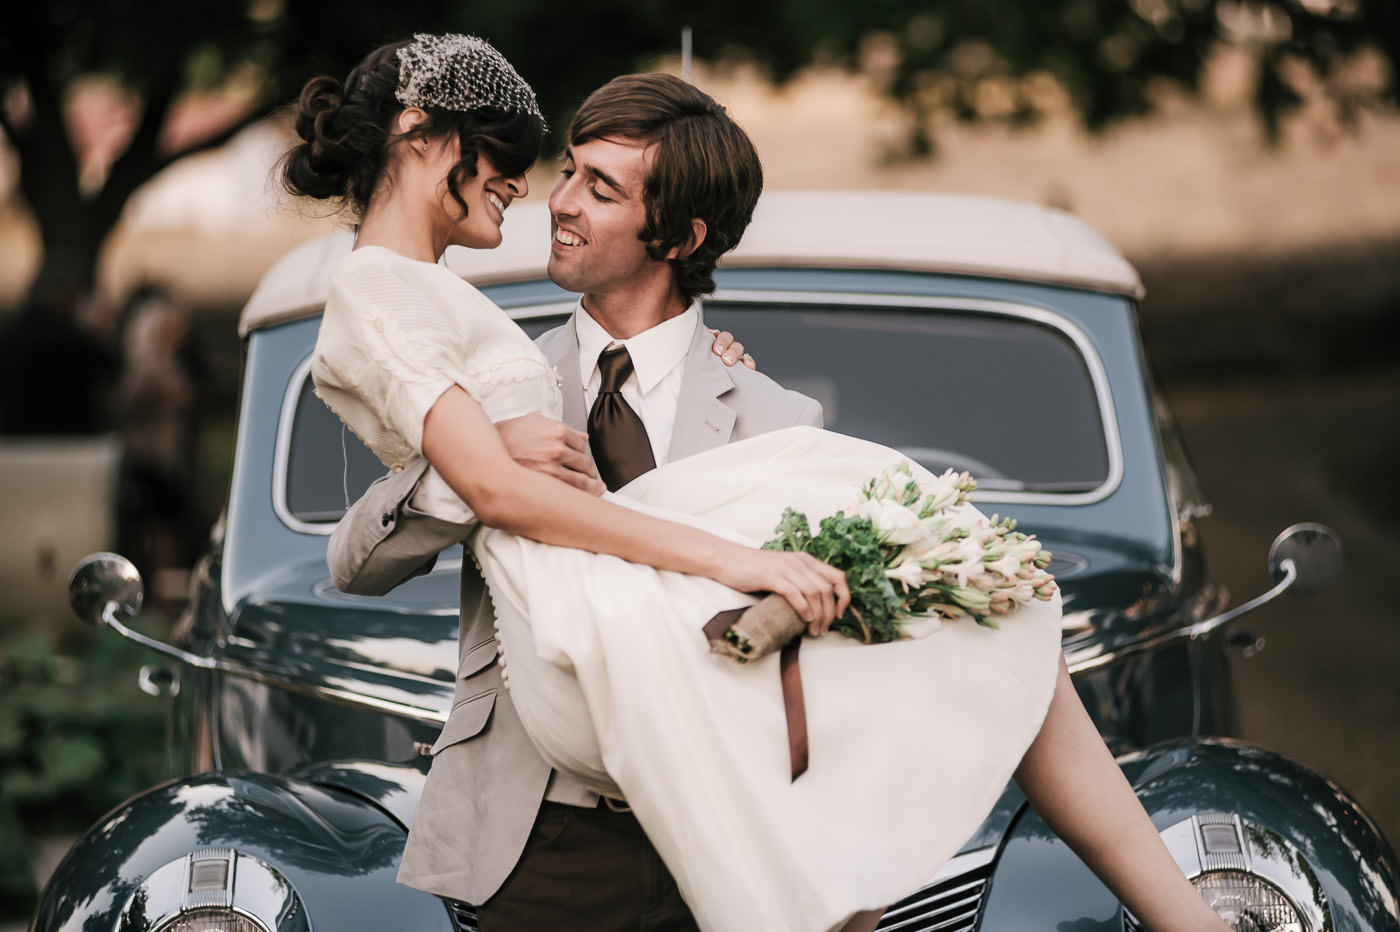 Bride and groom share a smile as he lifts her up in front of a classic car at their vintage wedding in the Temecula Wine Country